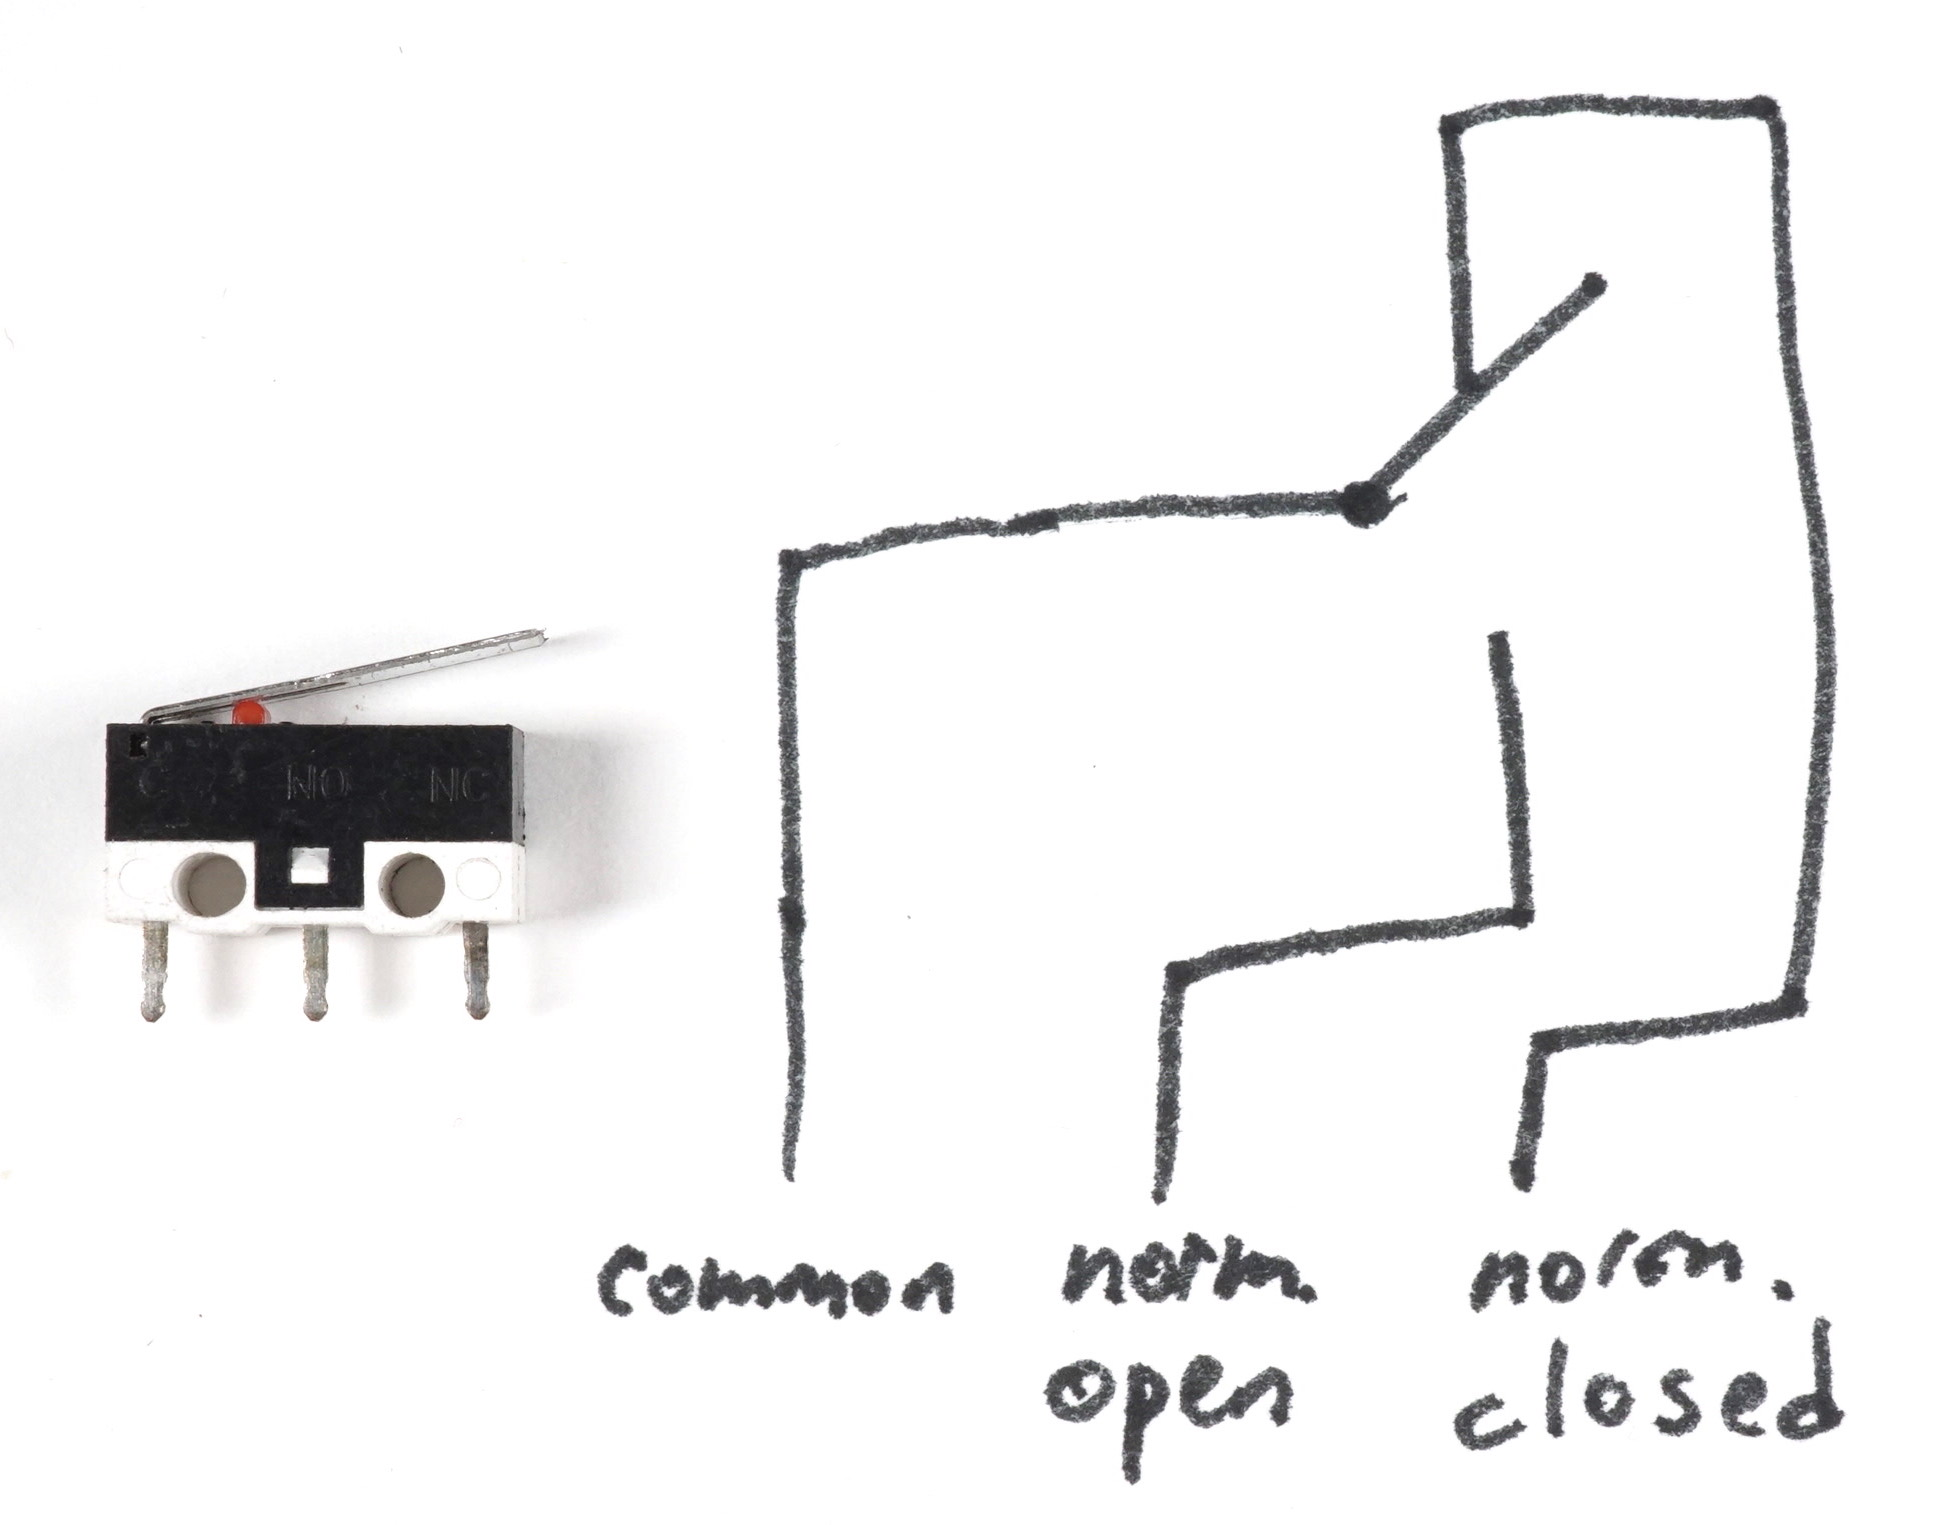 Reading Buttons And Switches Single Pole Double Throw Limit Switch Wiring Diagram Image Of A Small On Its Side With Three Legs The Top